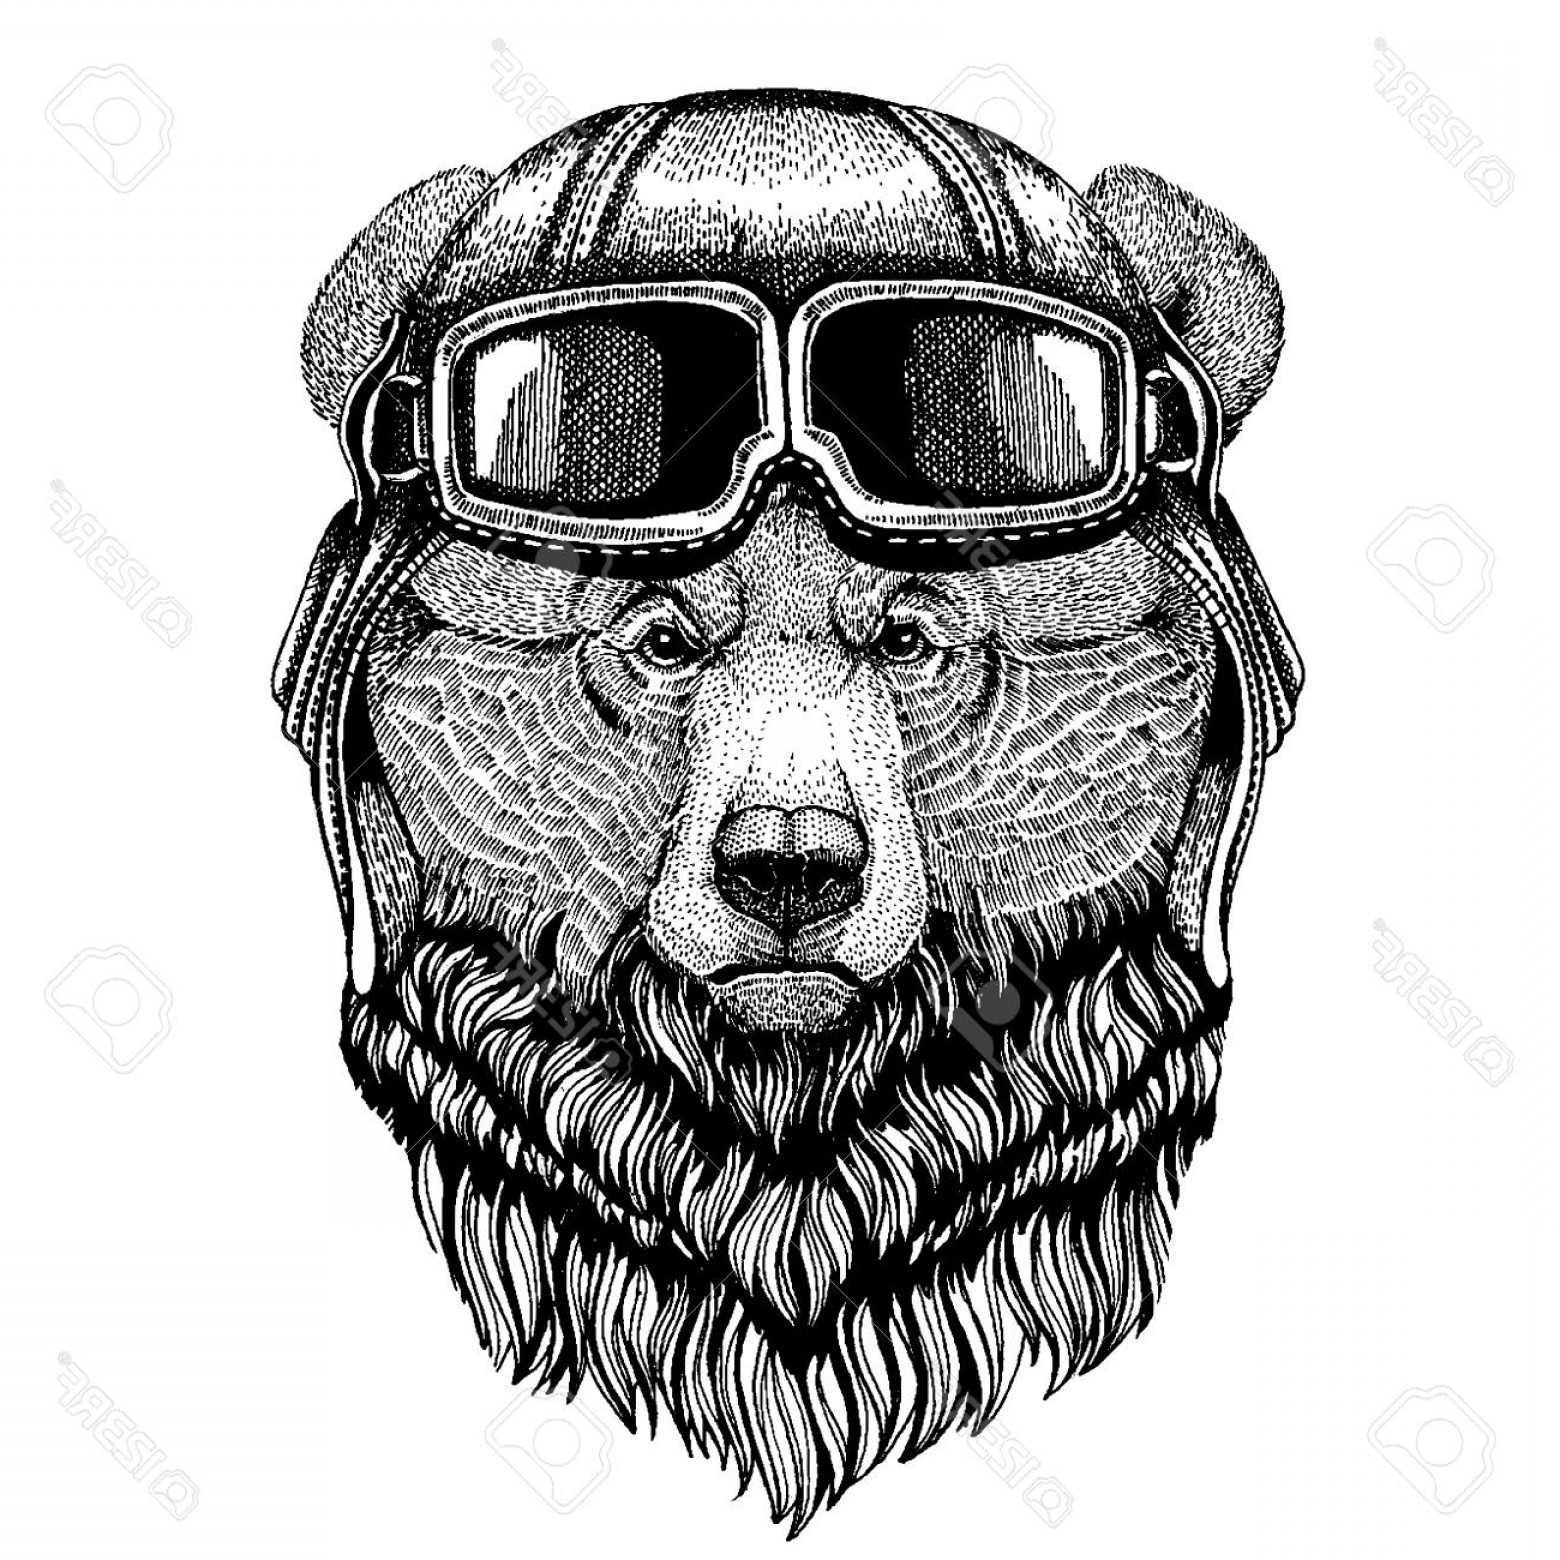 Aviator Vector Ink Drawings: Photostock Vector Animal Wearing Aviator Helmet With Glasses Vector Picture Grizzly Bear Big Wild Bear Hand Drawn Imag